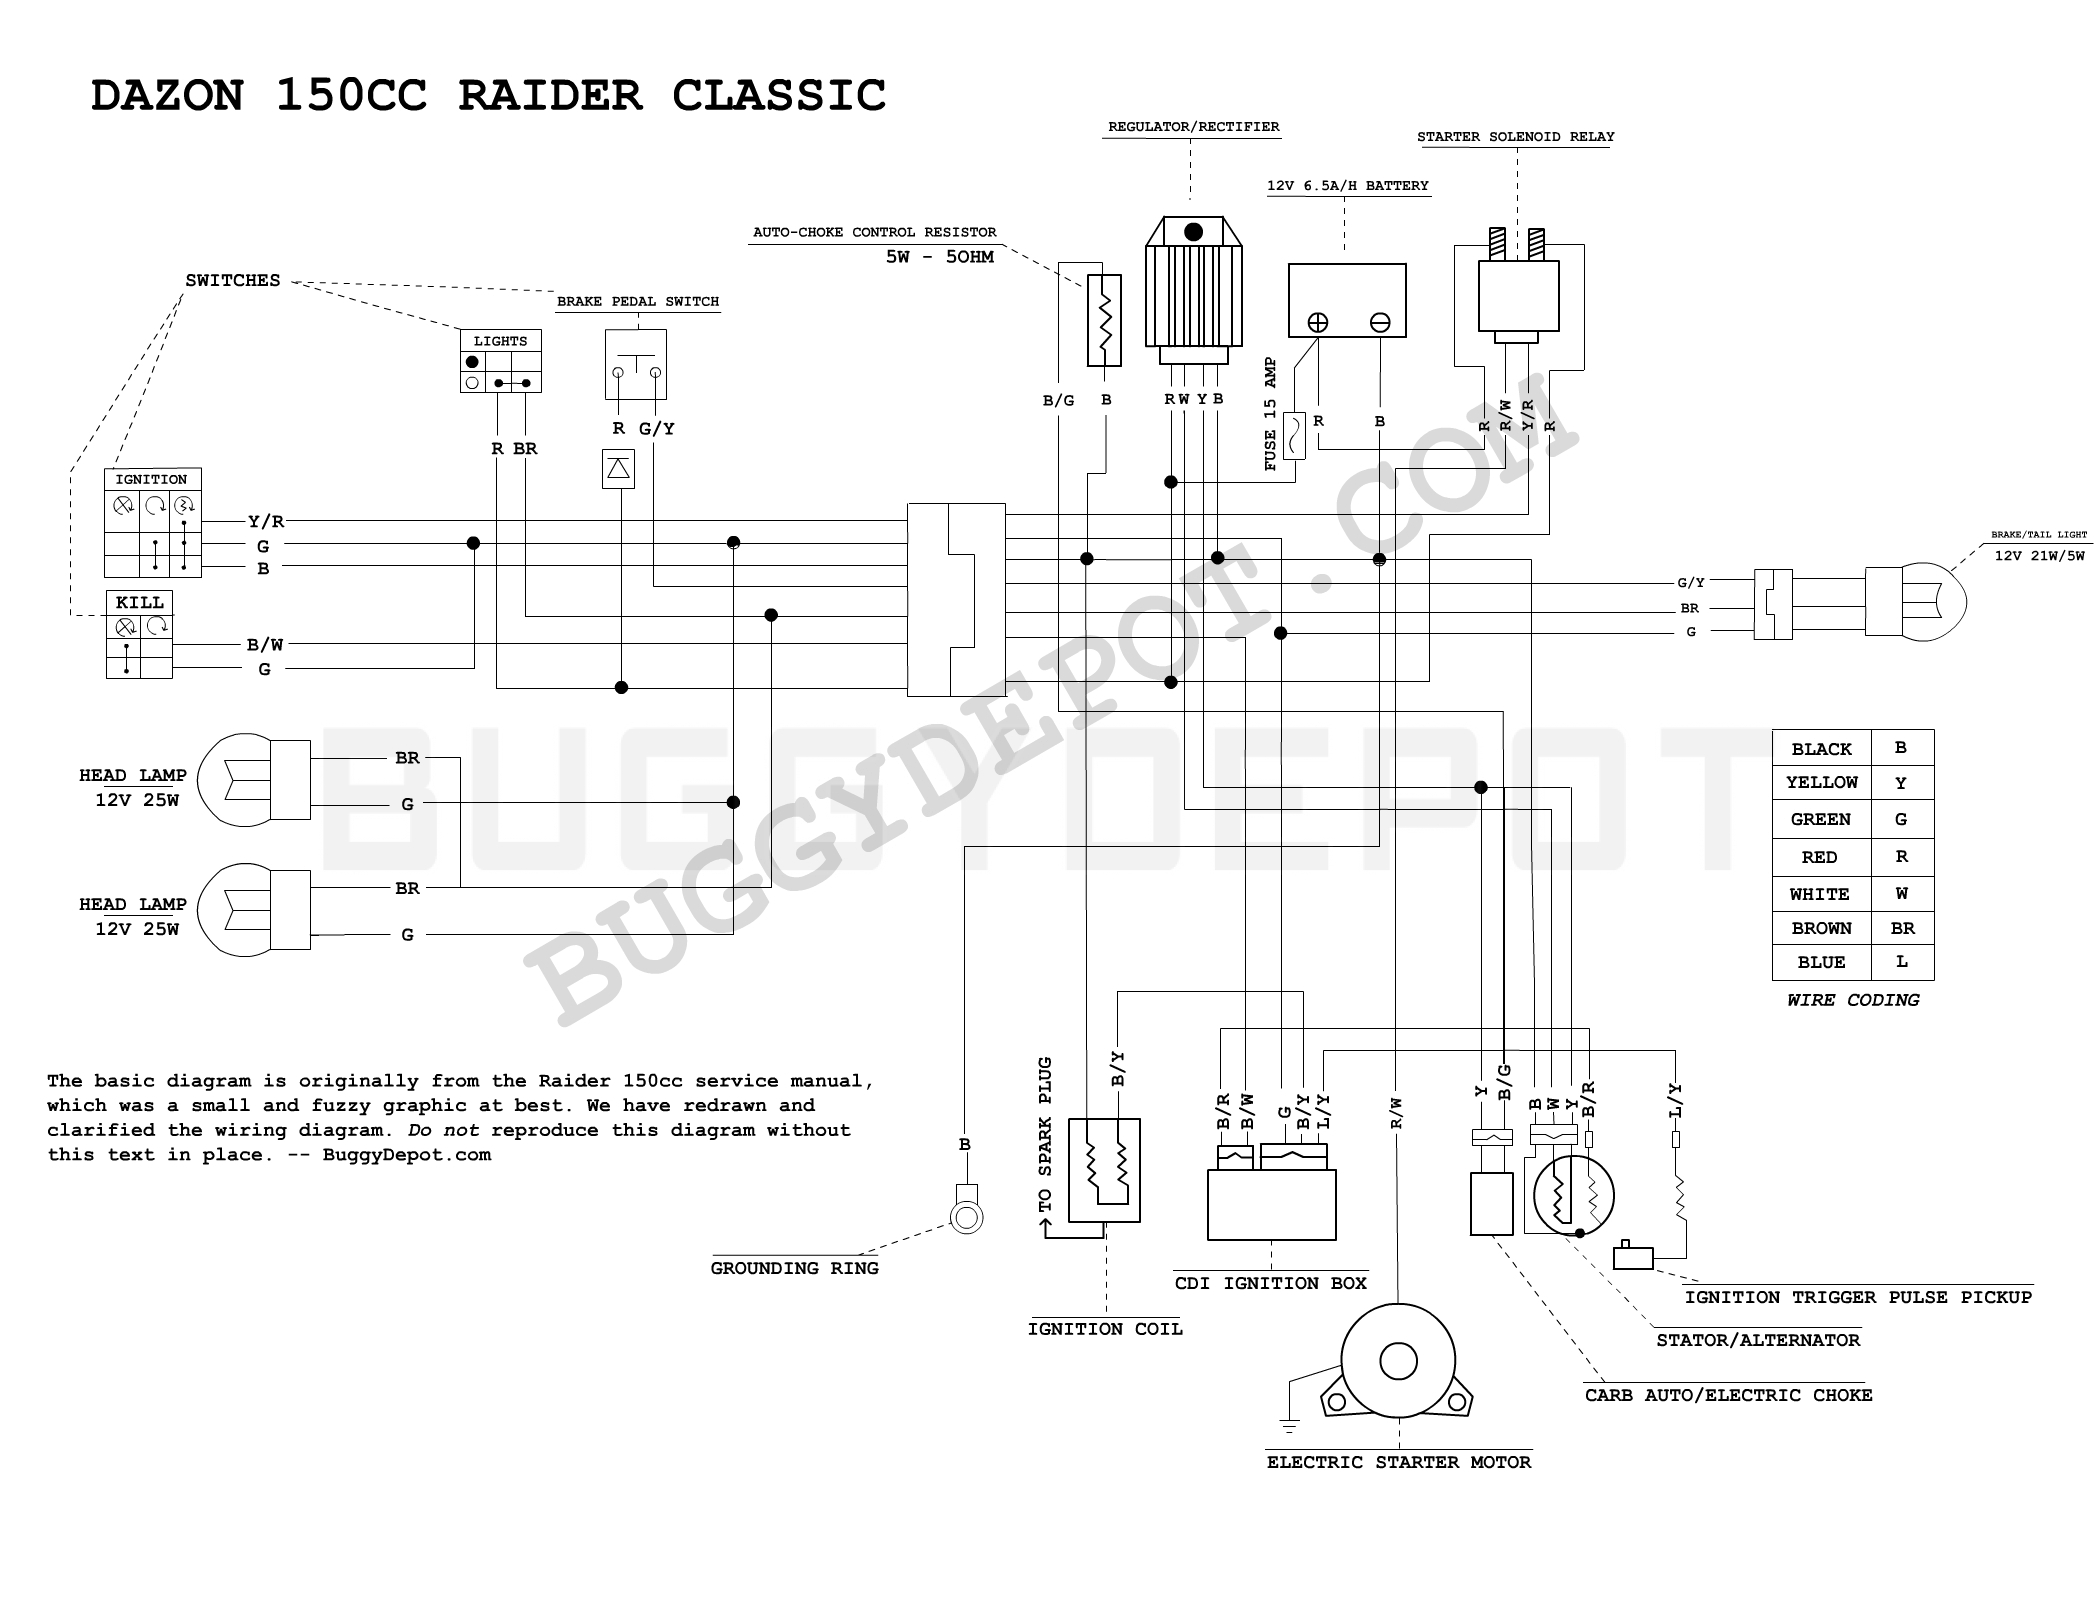 article_33_1278205207 gy6 150cc ignition troubleshooting guide no spark? buggy depot gy6 engine wiring diagram at bakdesigns.co